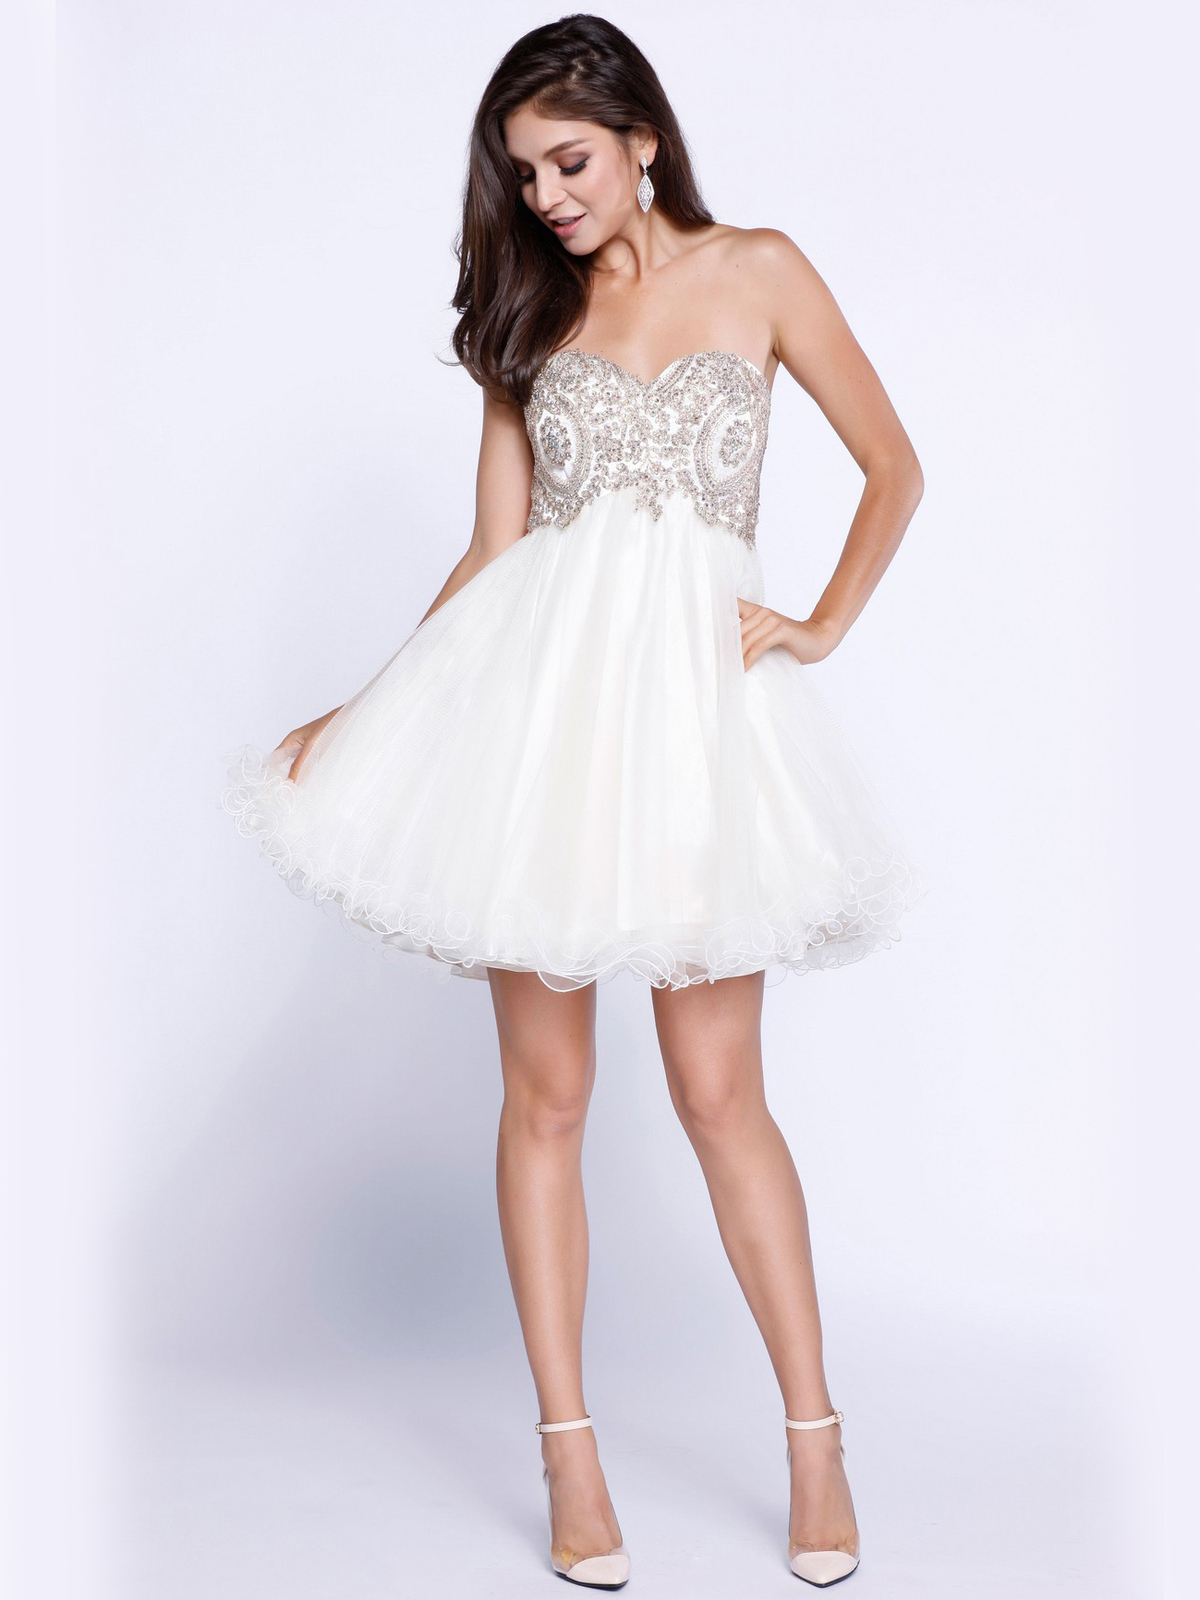 Strapless Sweetheart Short Prom Dress | Sung Boutique L.A.